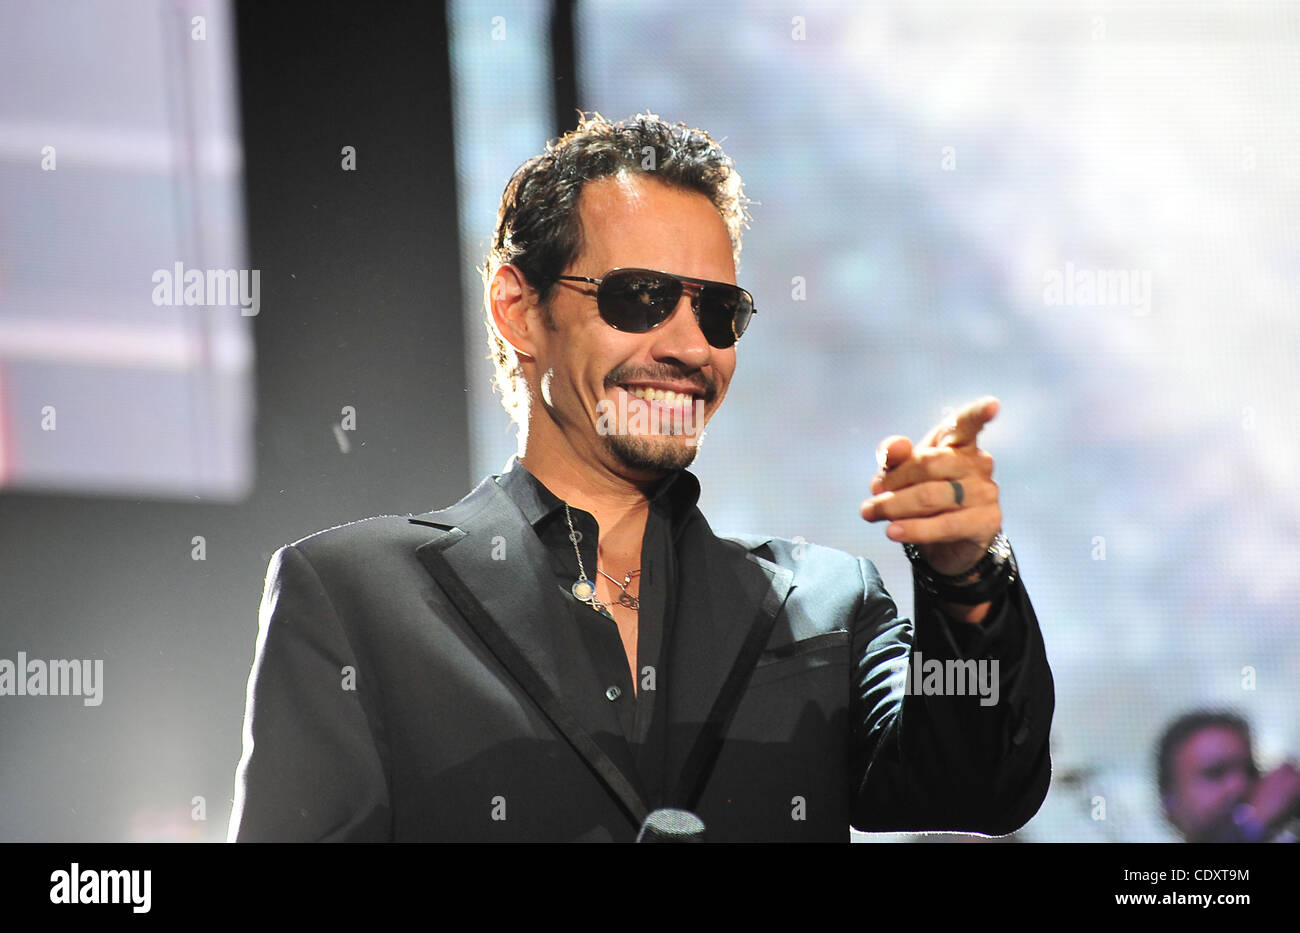 Sept 16 2011 Miami Fl U S Singer Marc Anthony Acknowledges The Audience As They Sing Happy Birthday During His Concert At The American Airlines Arena In Miami Florida Friday Night